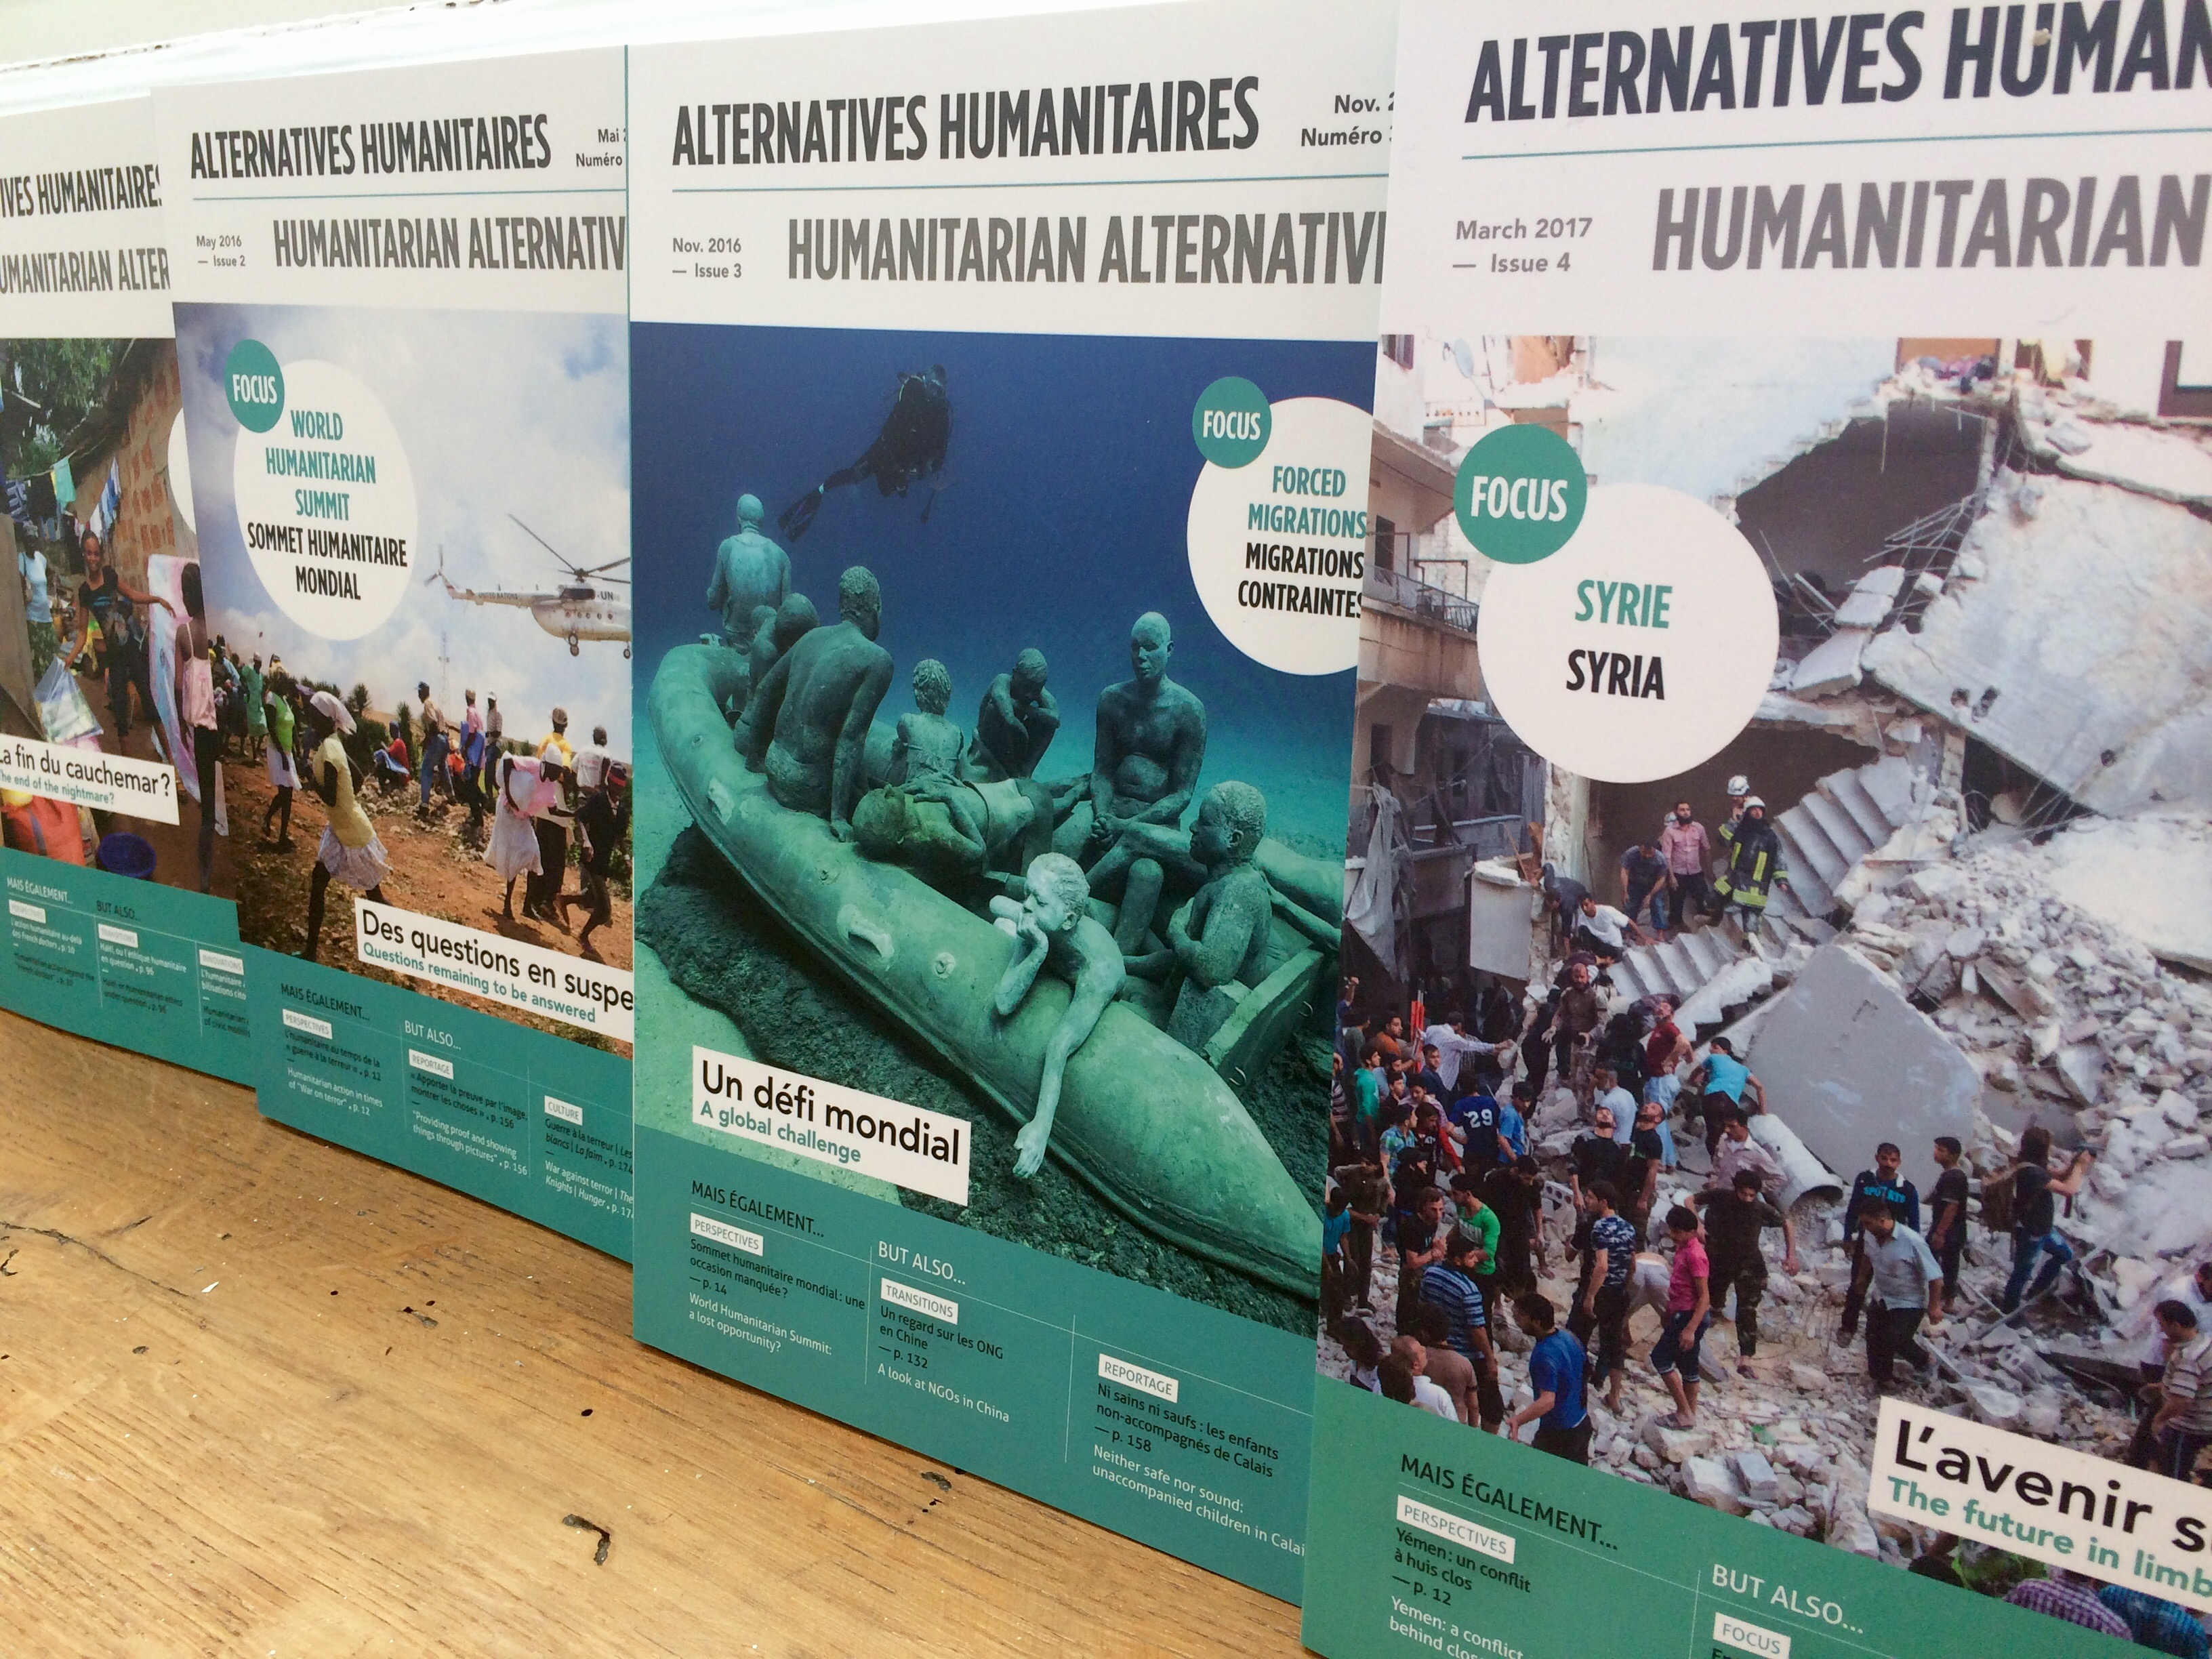 Alternatives Humanitaires